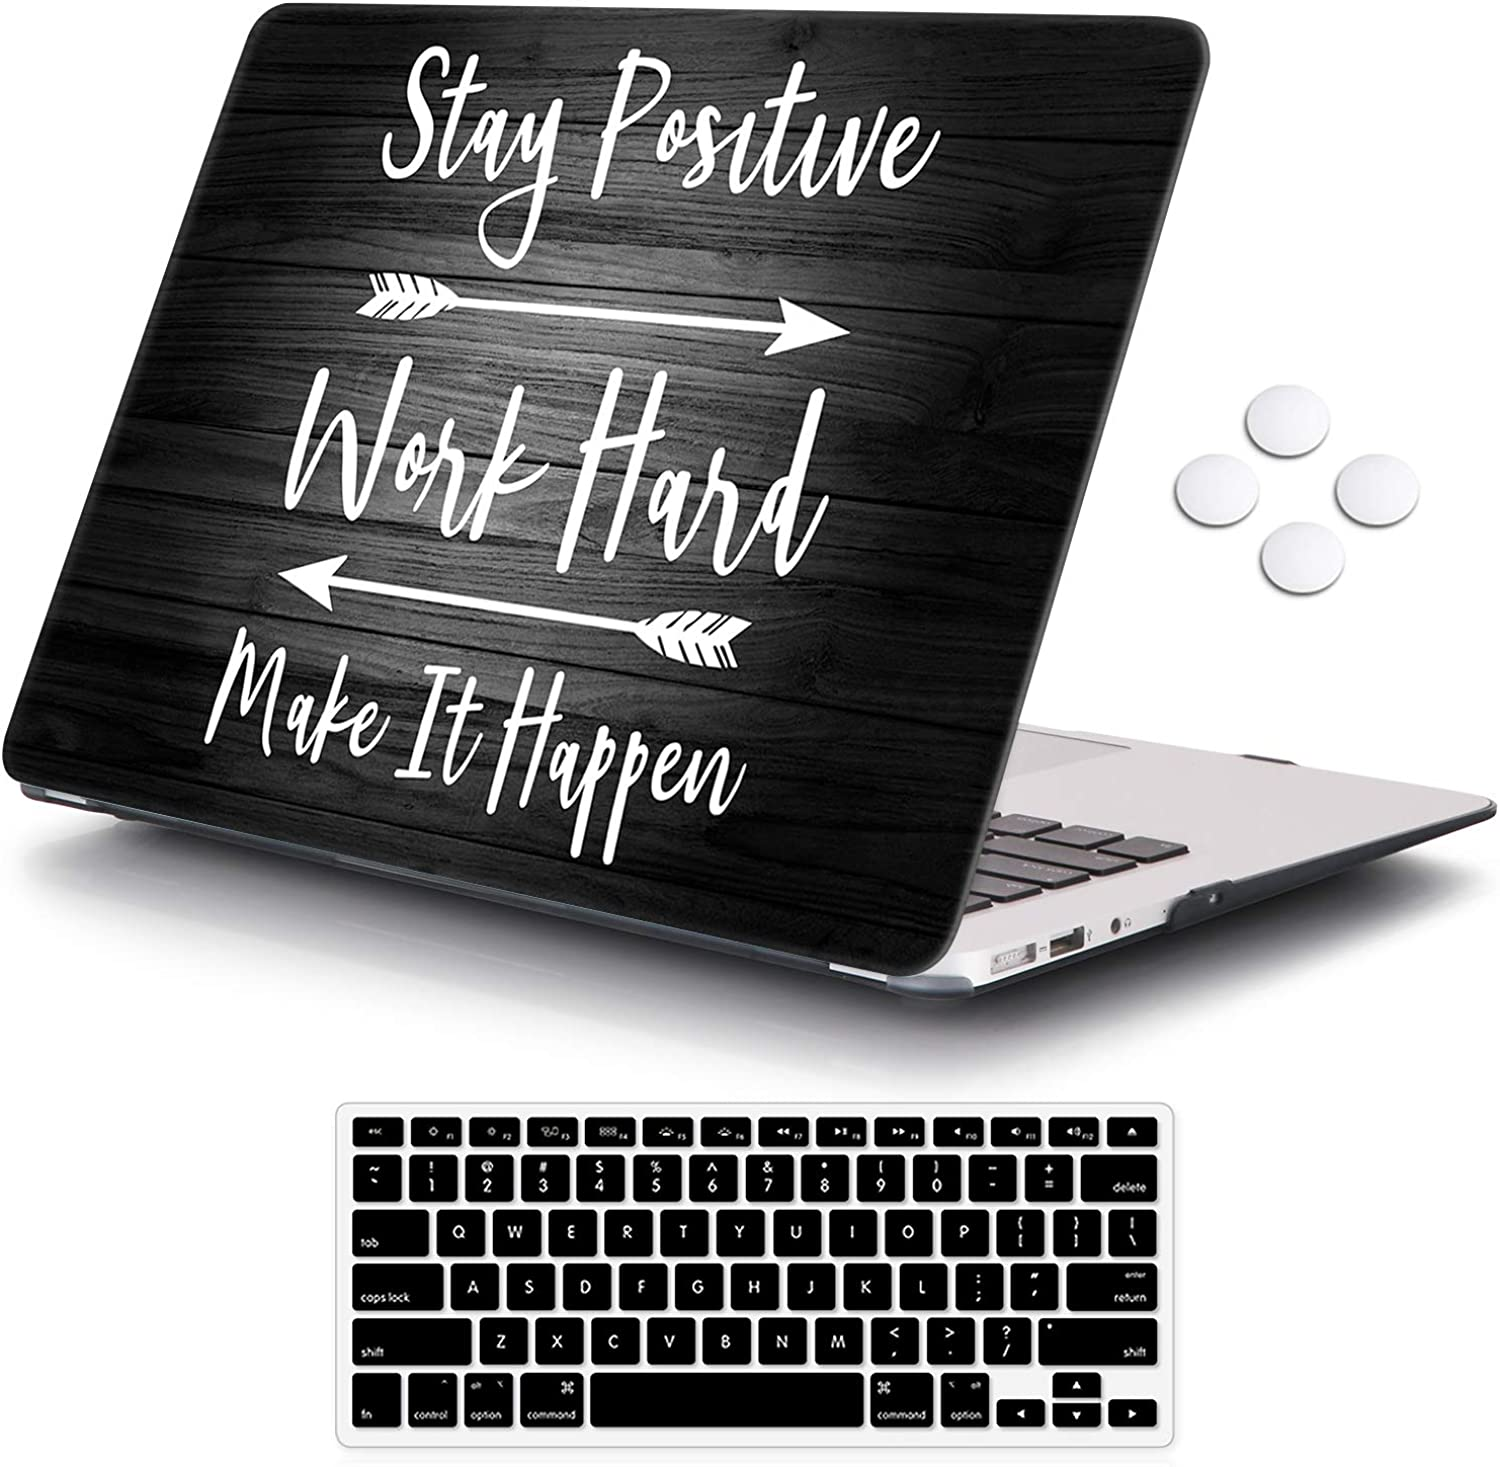 iCasso Macbook Air 11 inch Case Model A1370/A1465, Ultra Slim Pattern Plastic Hard Shell Case Protective Cover Compatible MacBook Air 11'' with Keyboard Cover - Stay Positive